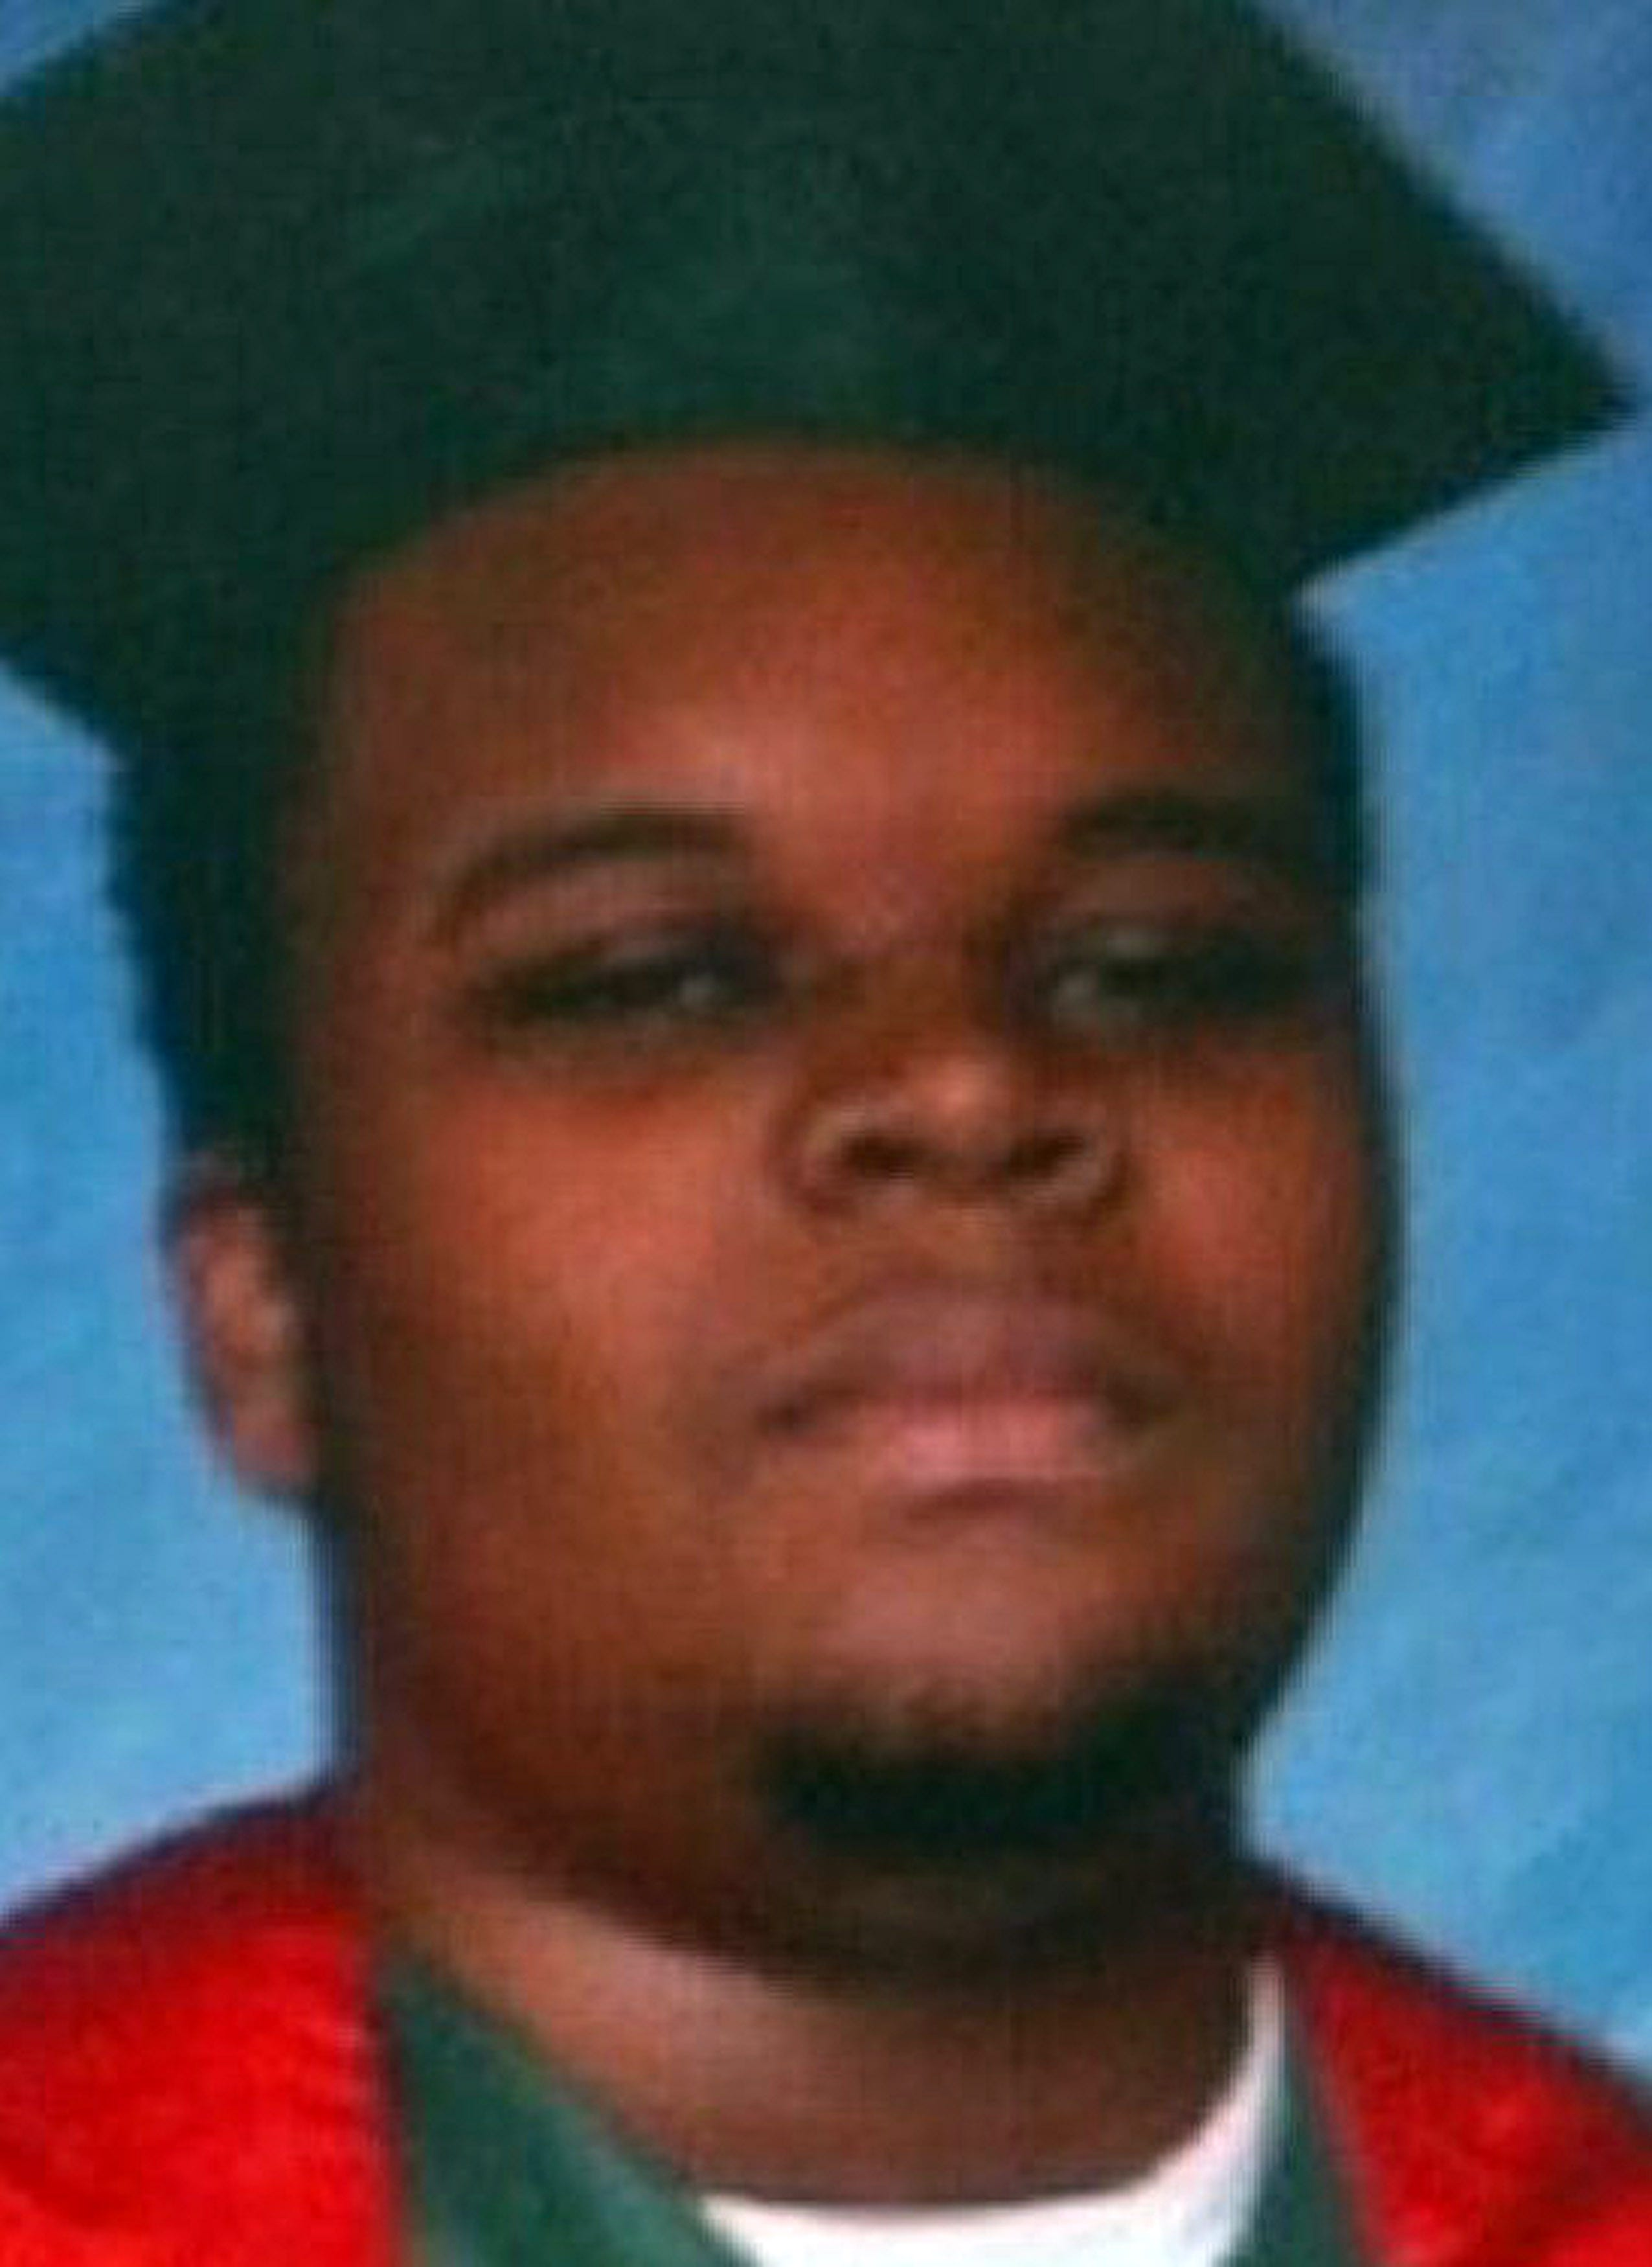 Michael brown had no criminal background